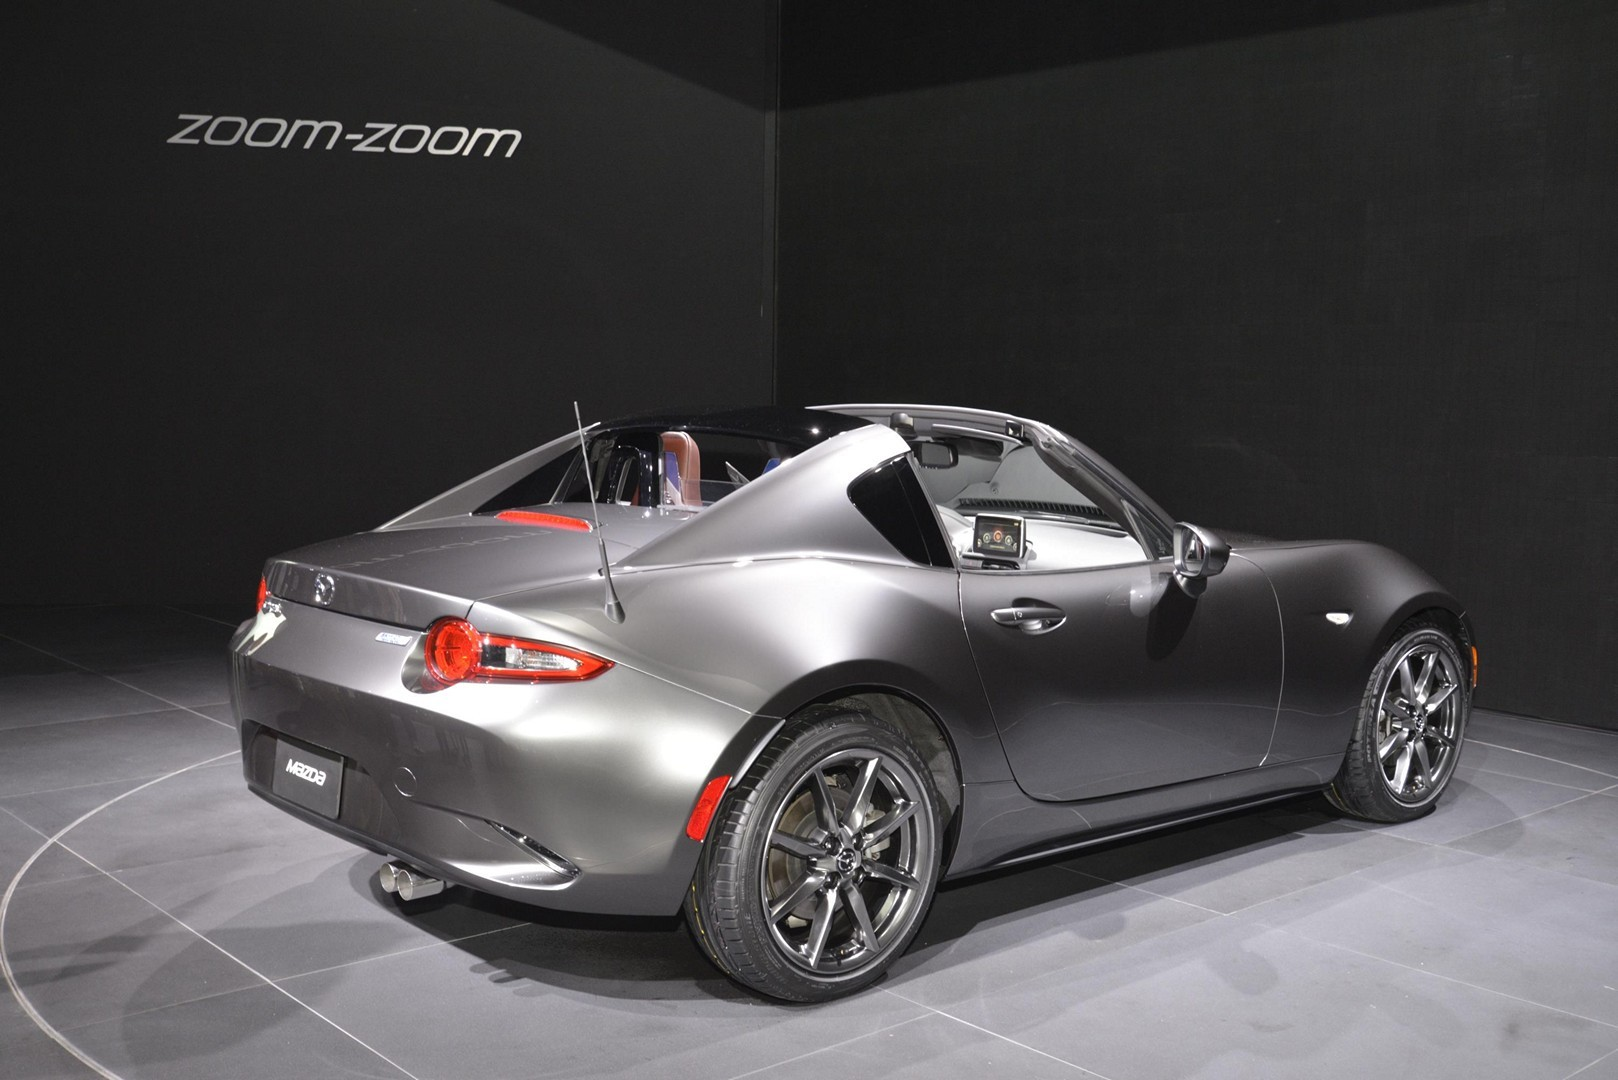 2017 mazda mx 5 rf features fake quarter glass and redish. Black Bedroom Furniture Sets. Home Design Ideas